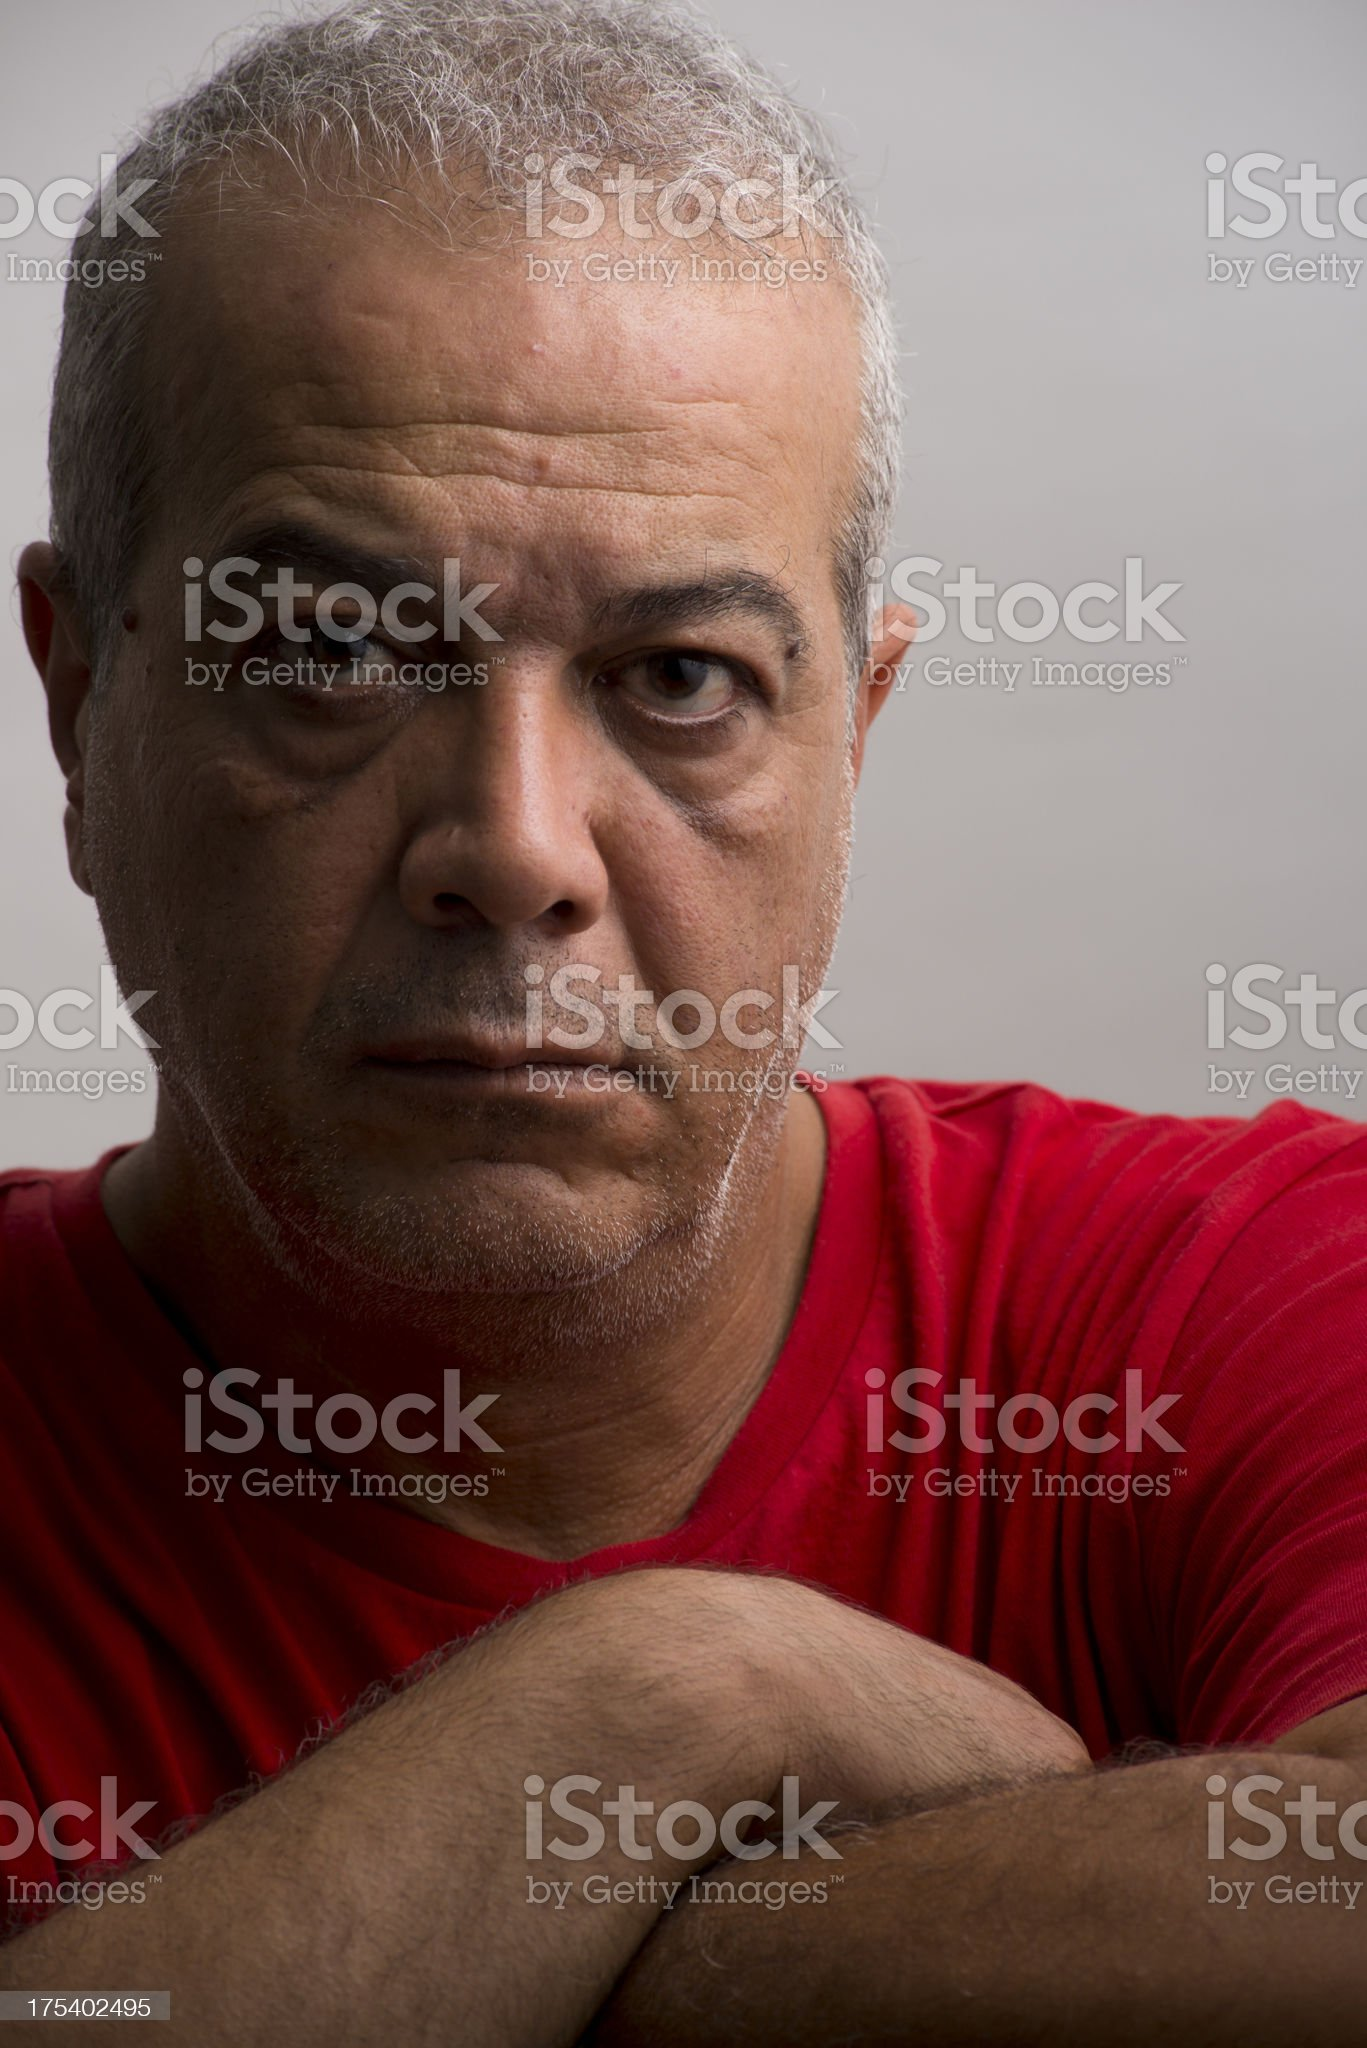 Charismatic Man royalty-free stock photo